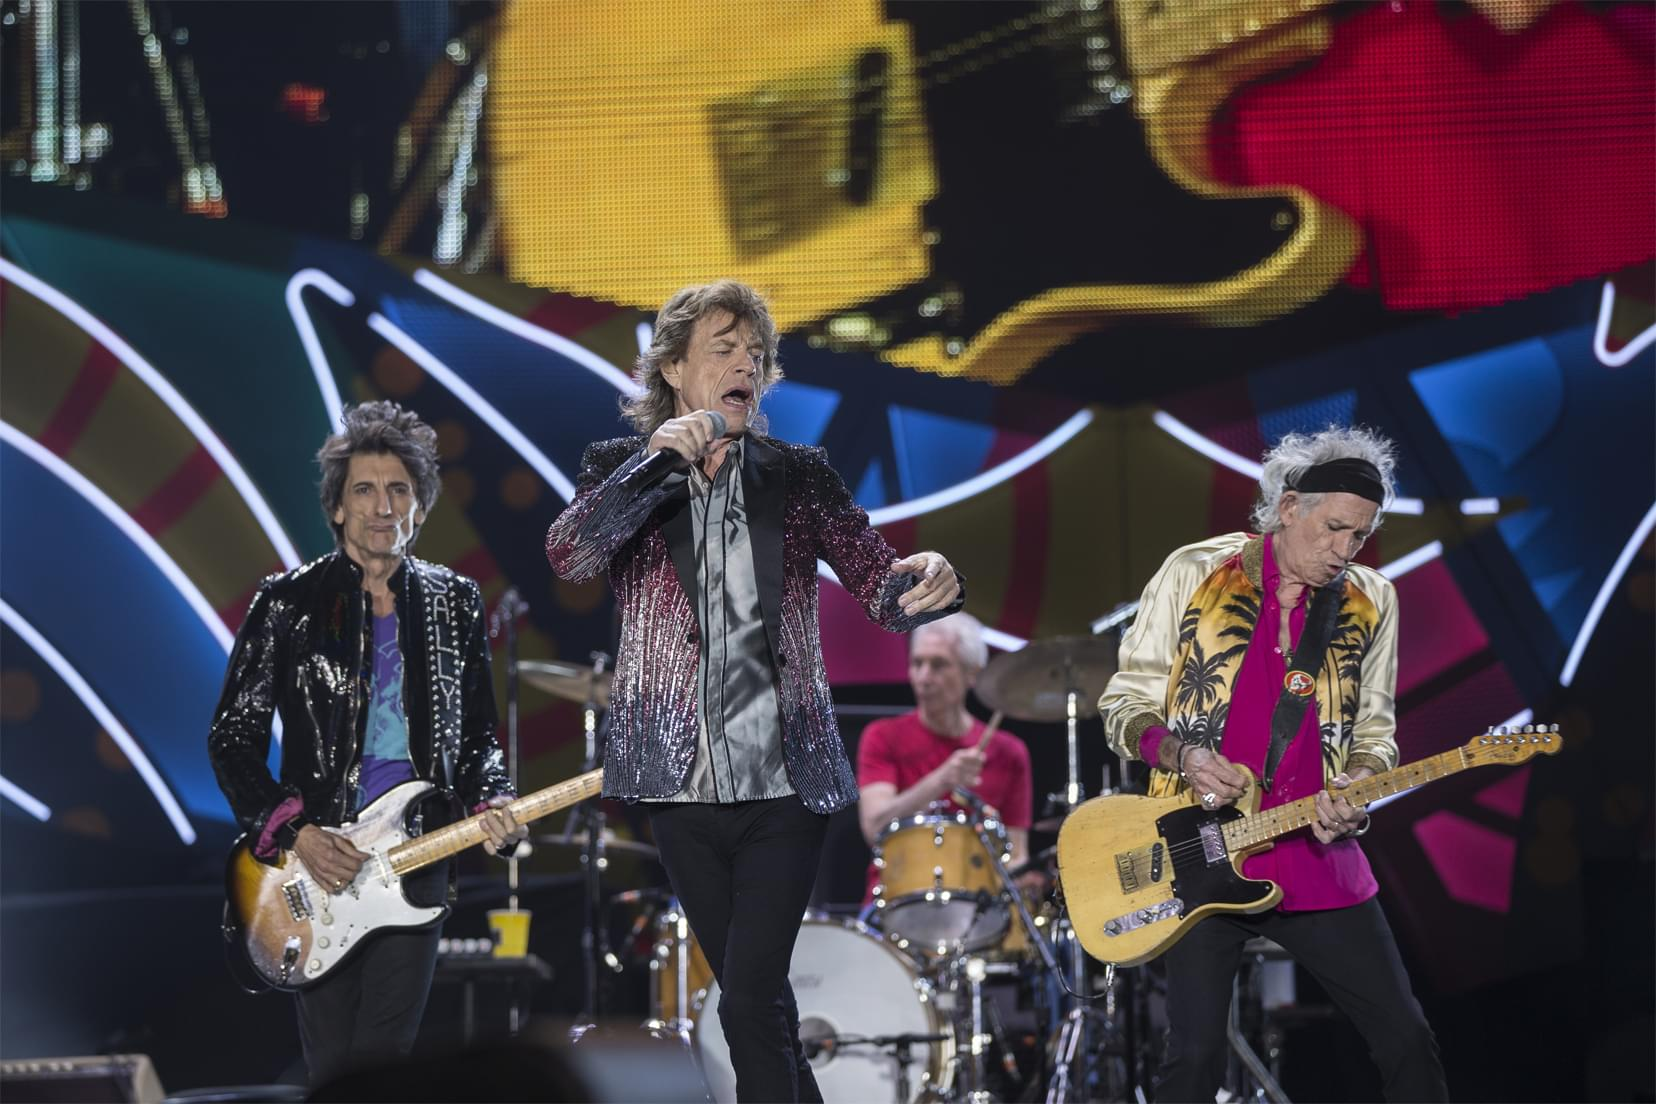 The Rolling Stones kick off their tour in Chicago in June